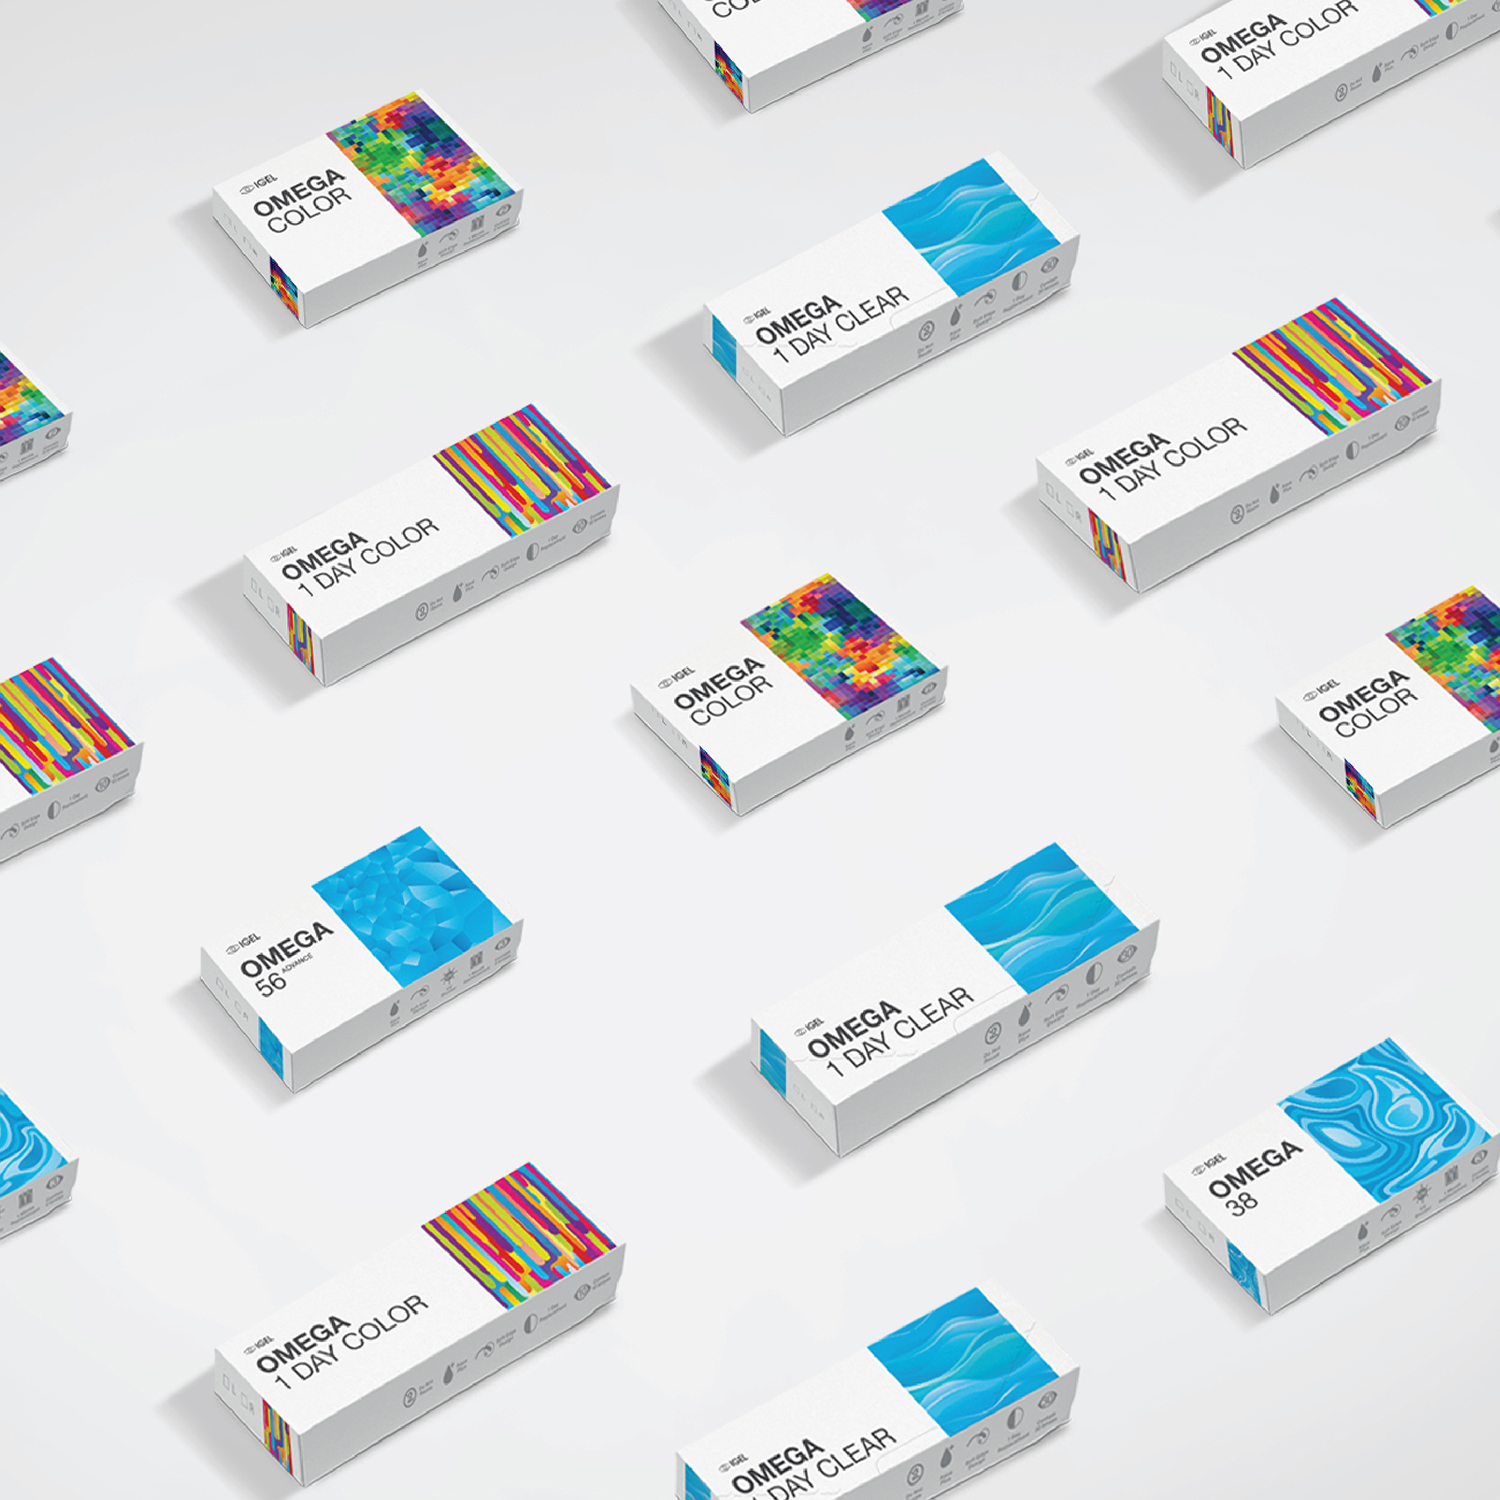 IGEL contact lens packaging with vibrant colours and bold element design lined up in photo